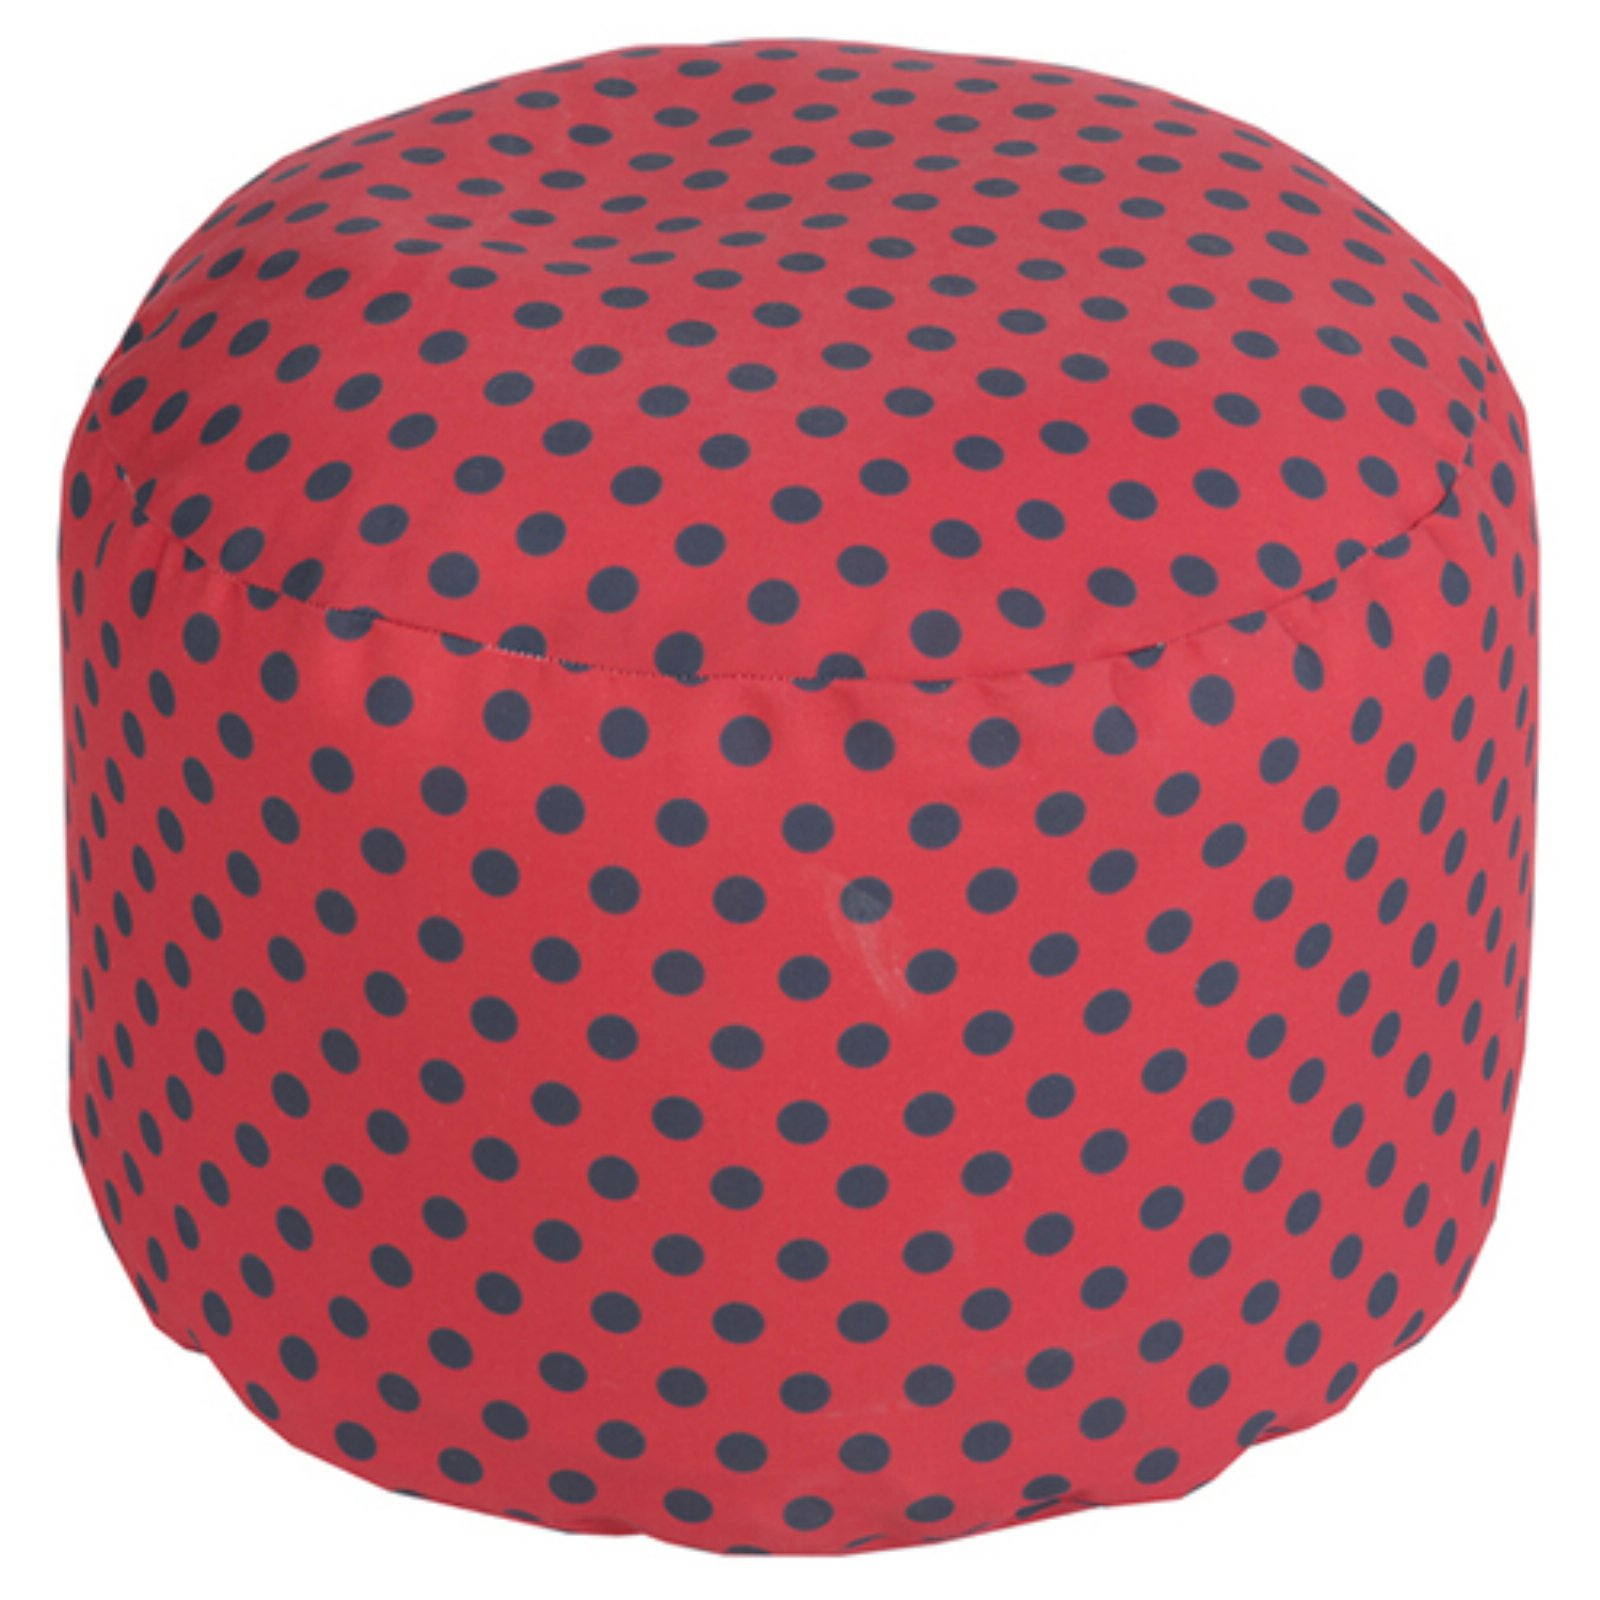 Surya 20 x 20 in. Outdoor Polka Dot Round Pouf by Surya